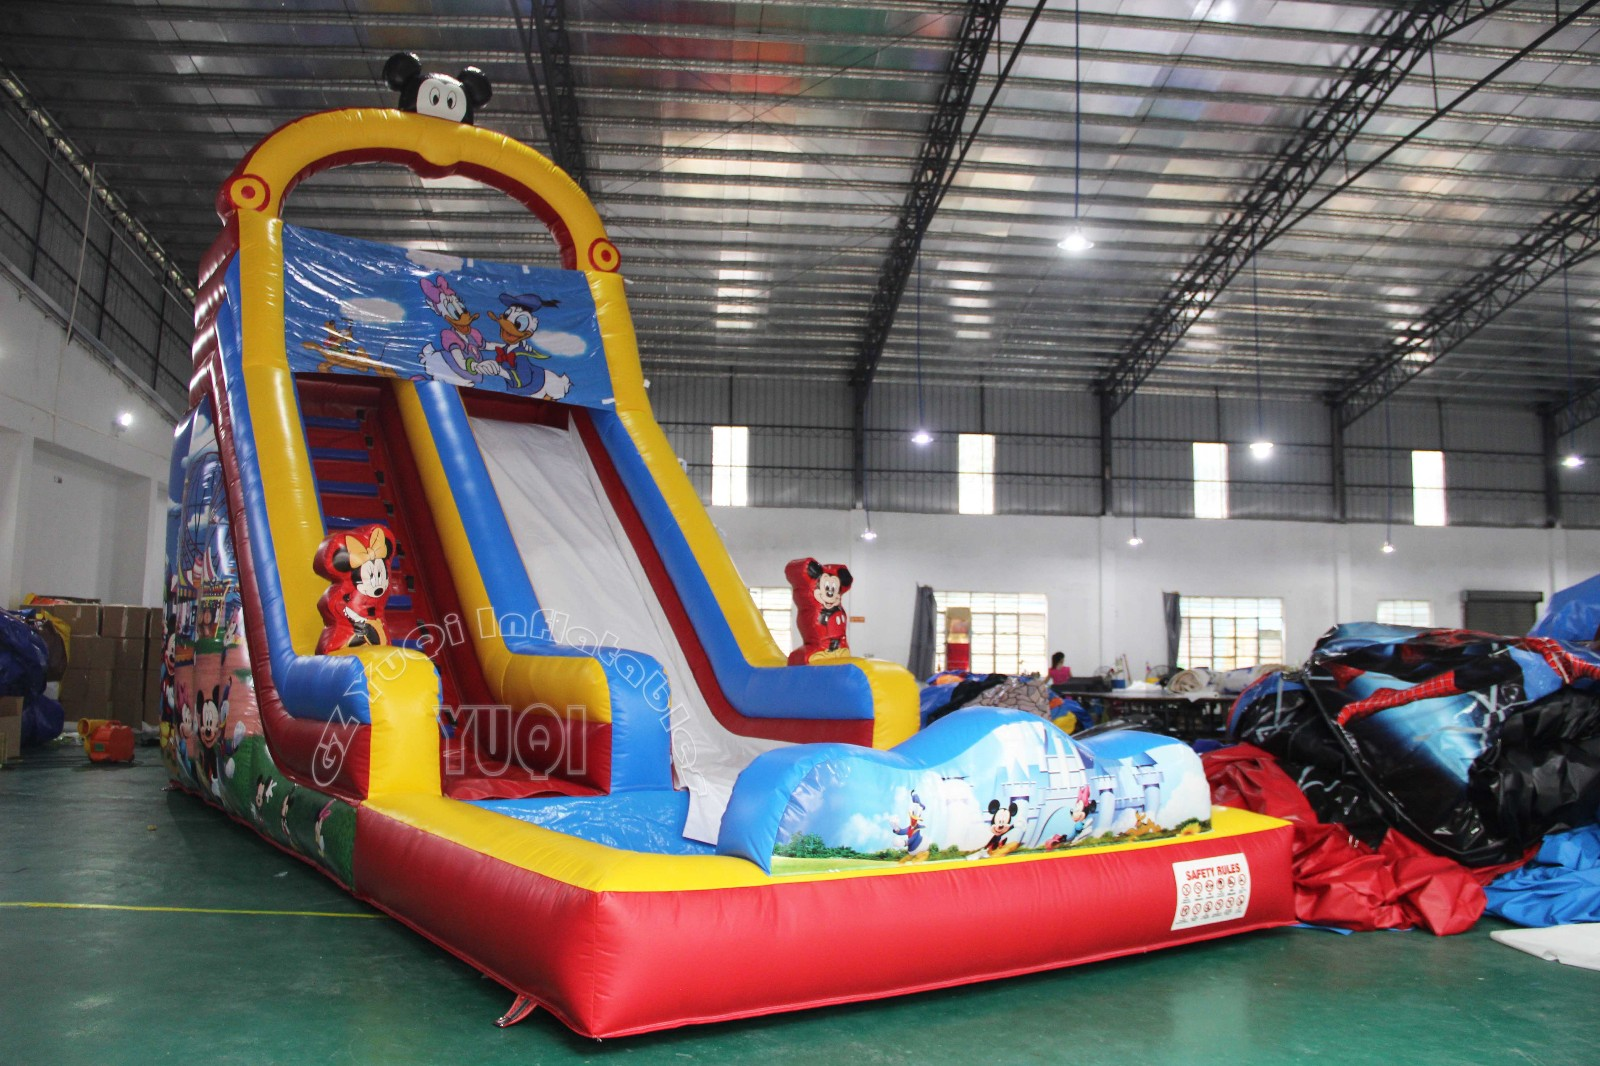 YUQI-Find Water Park Inflatable Slide Inflatables With Water Slide